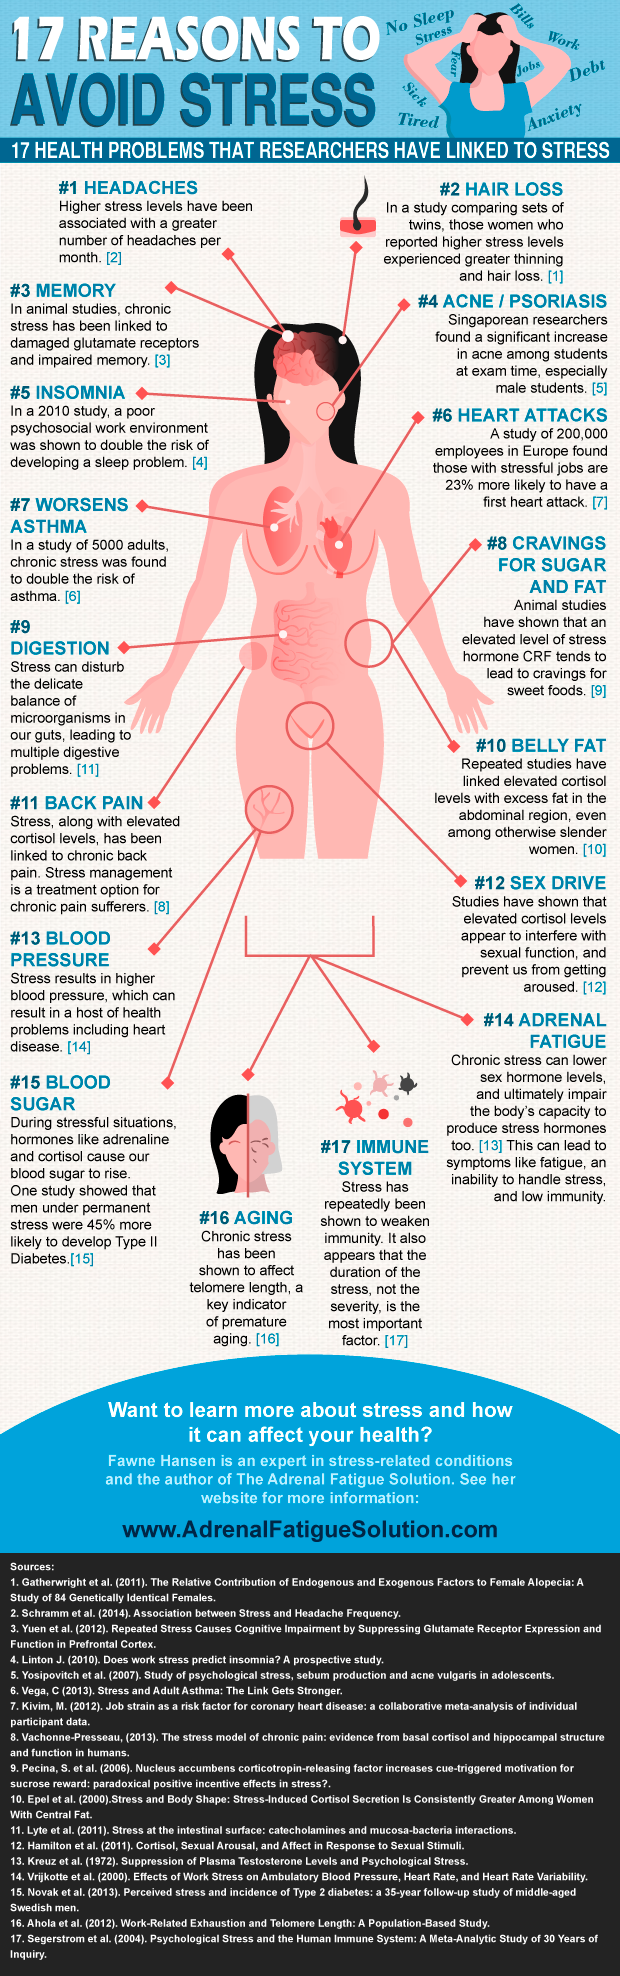 17 Side Effects Of Stress Infographic